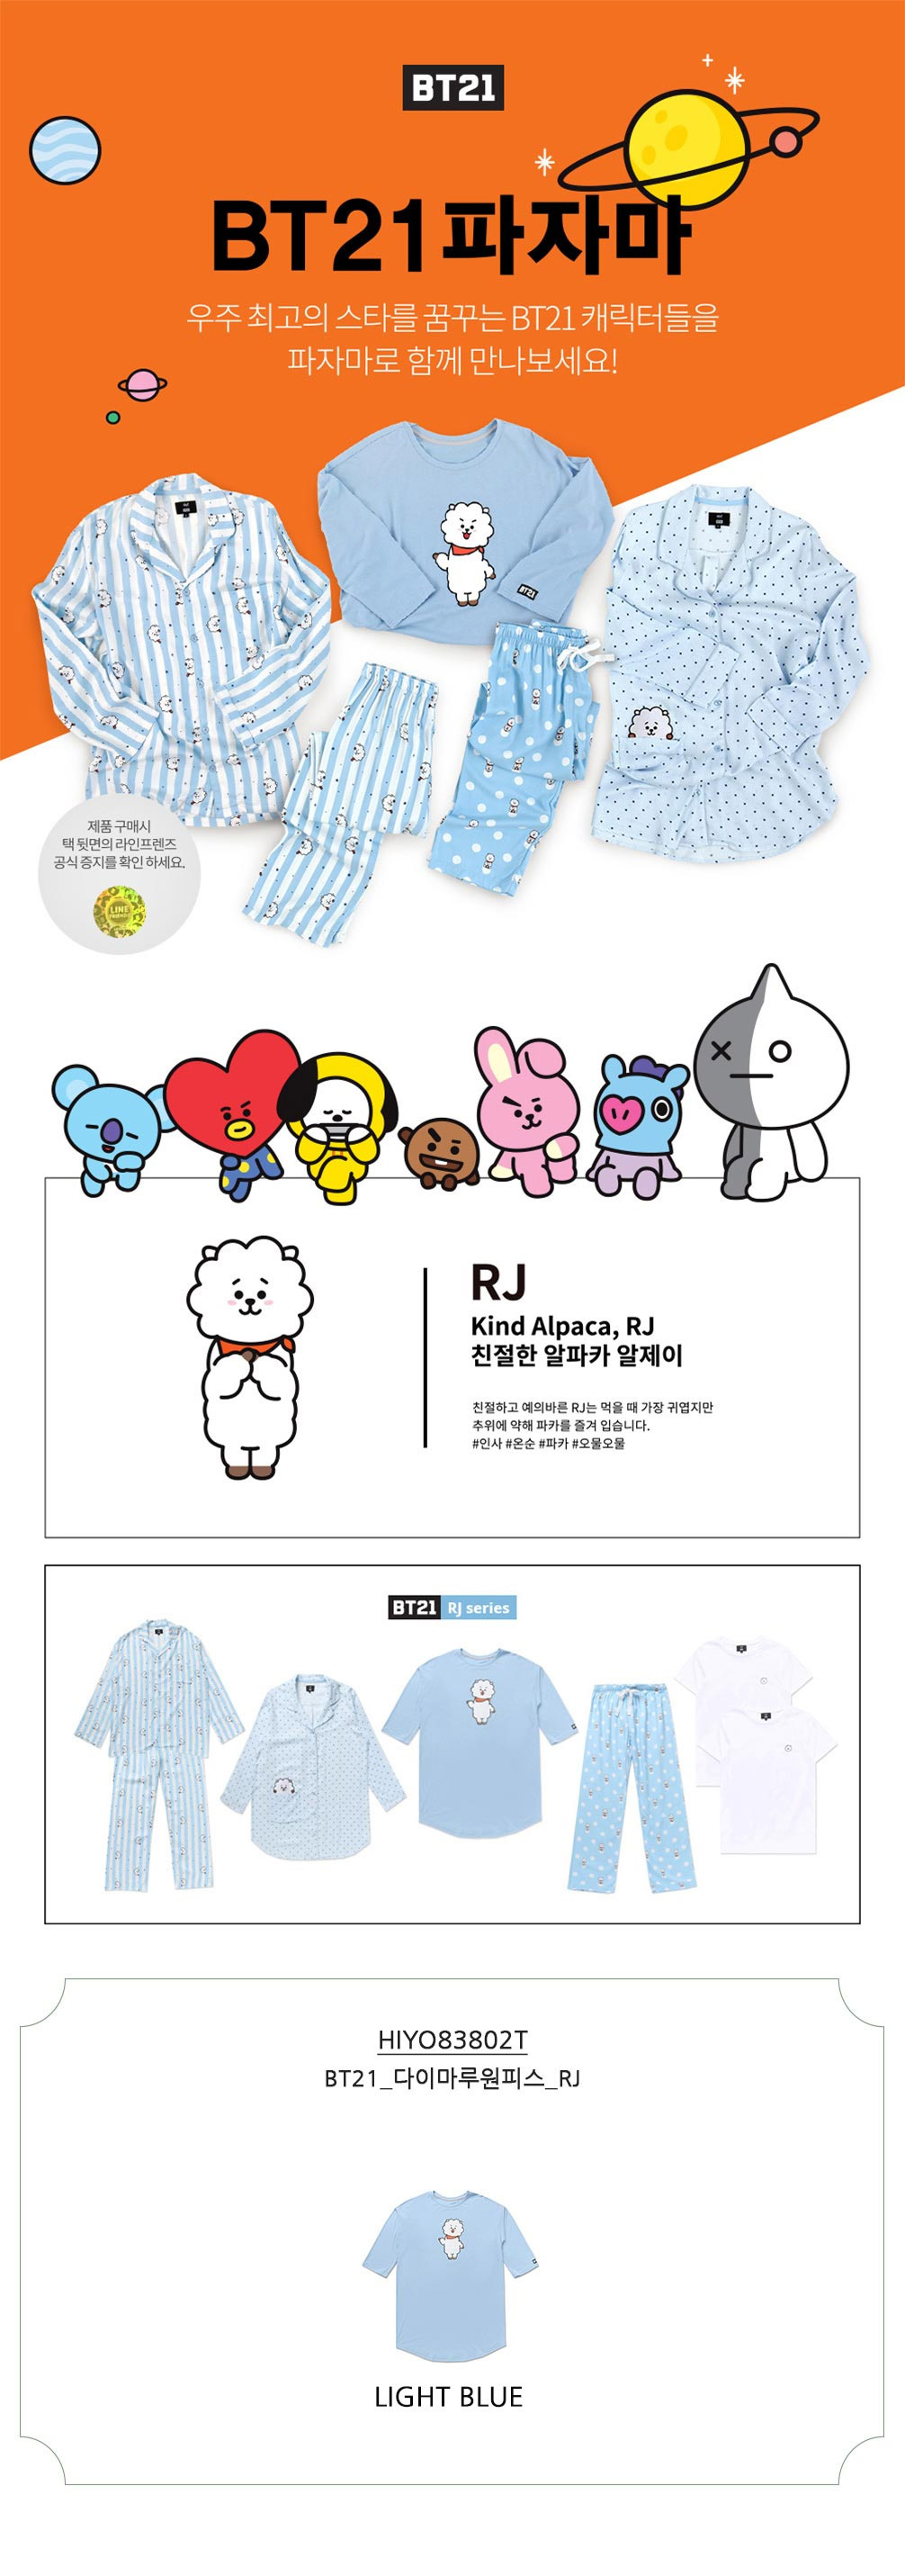 bt21_hunt_cottononepiece_01.jpg